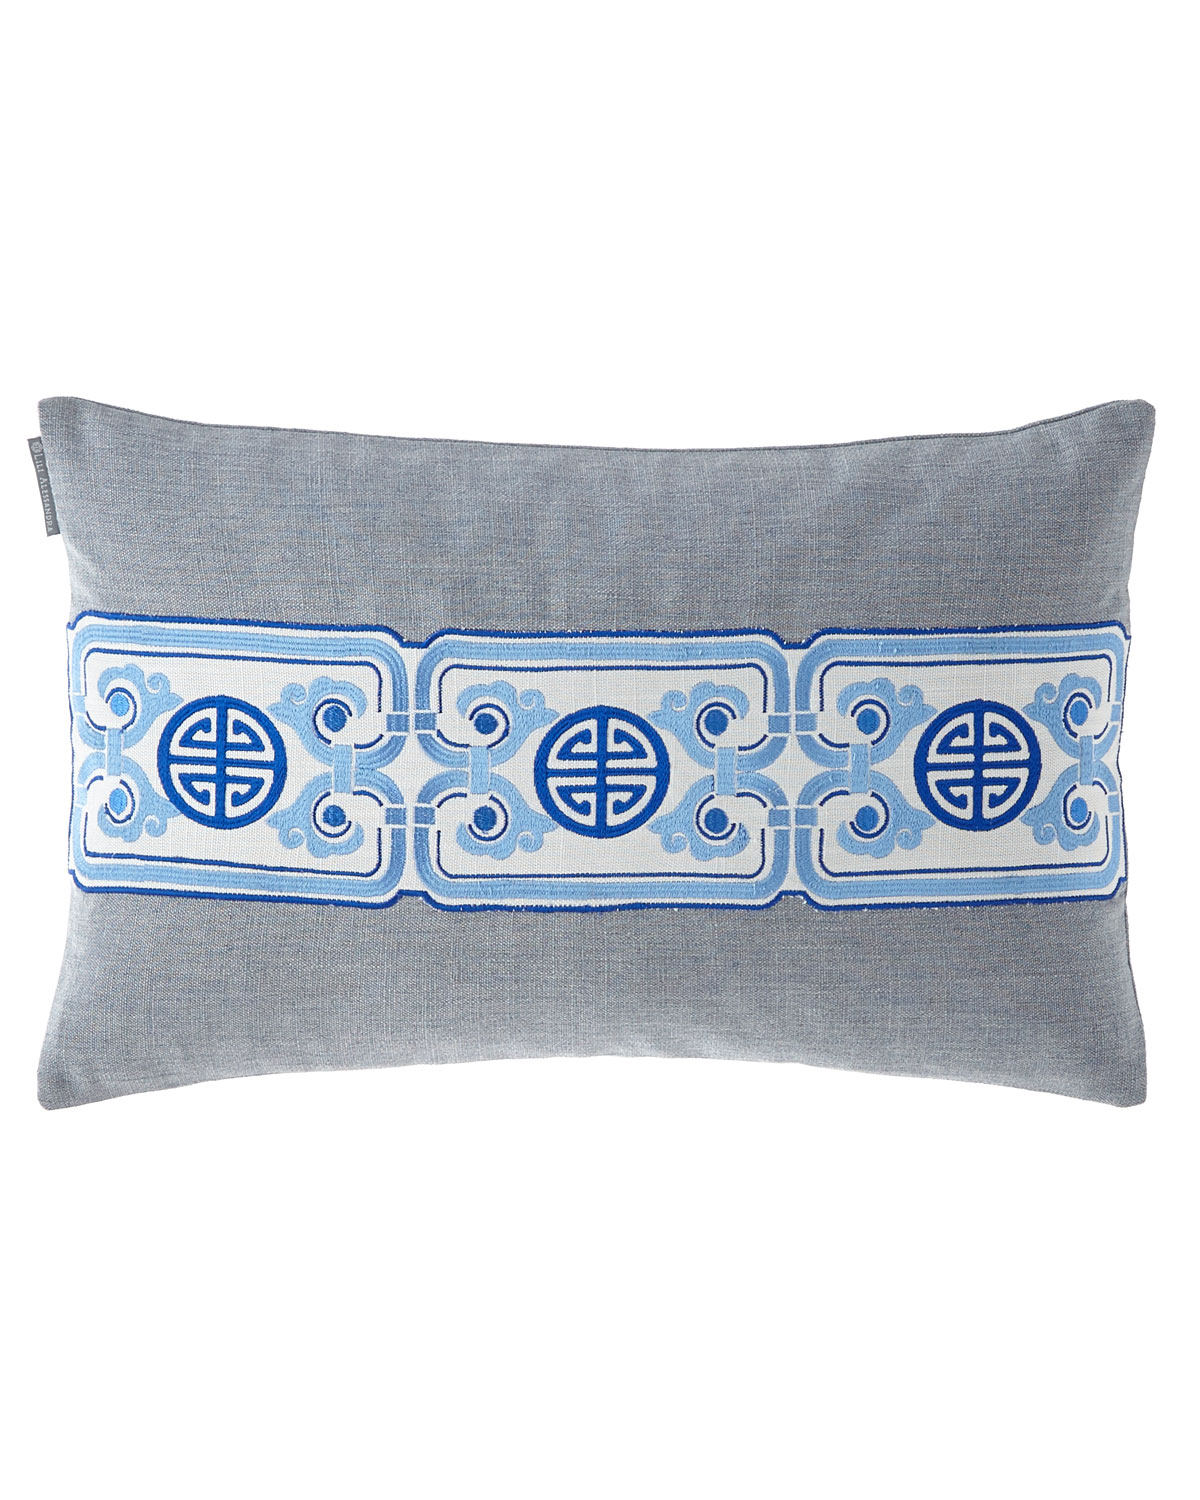 Lili Alessandra Oriental Chain Small Rectangle Pillow